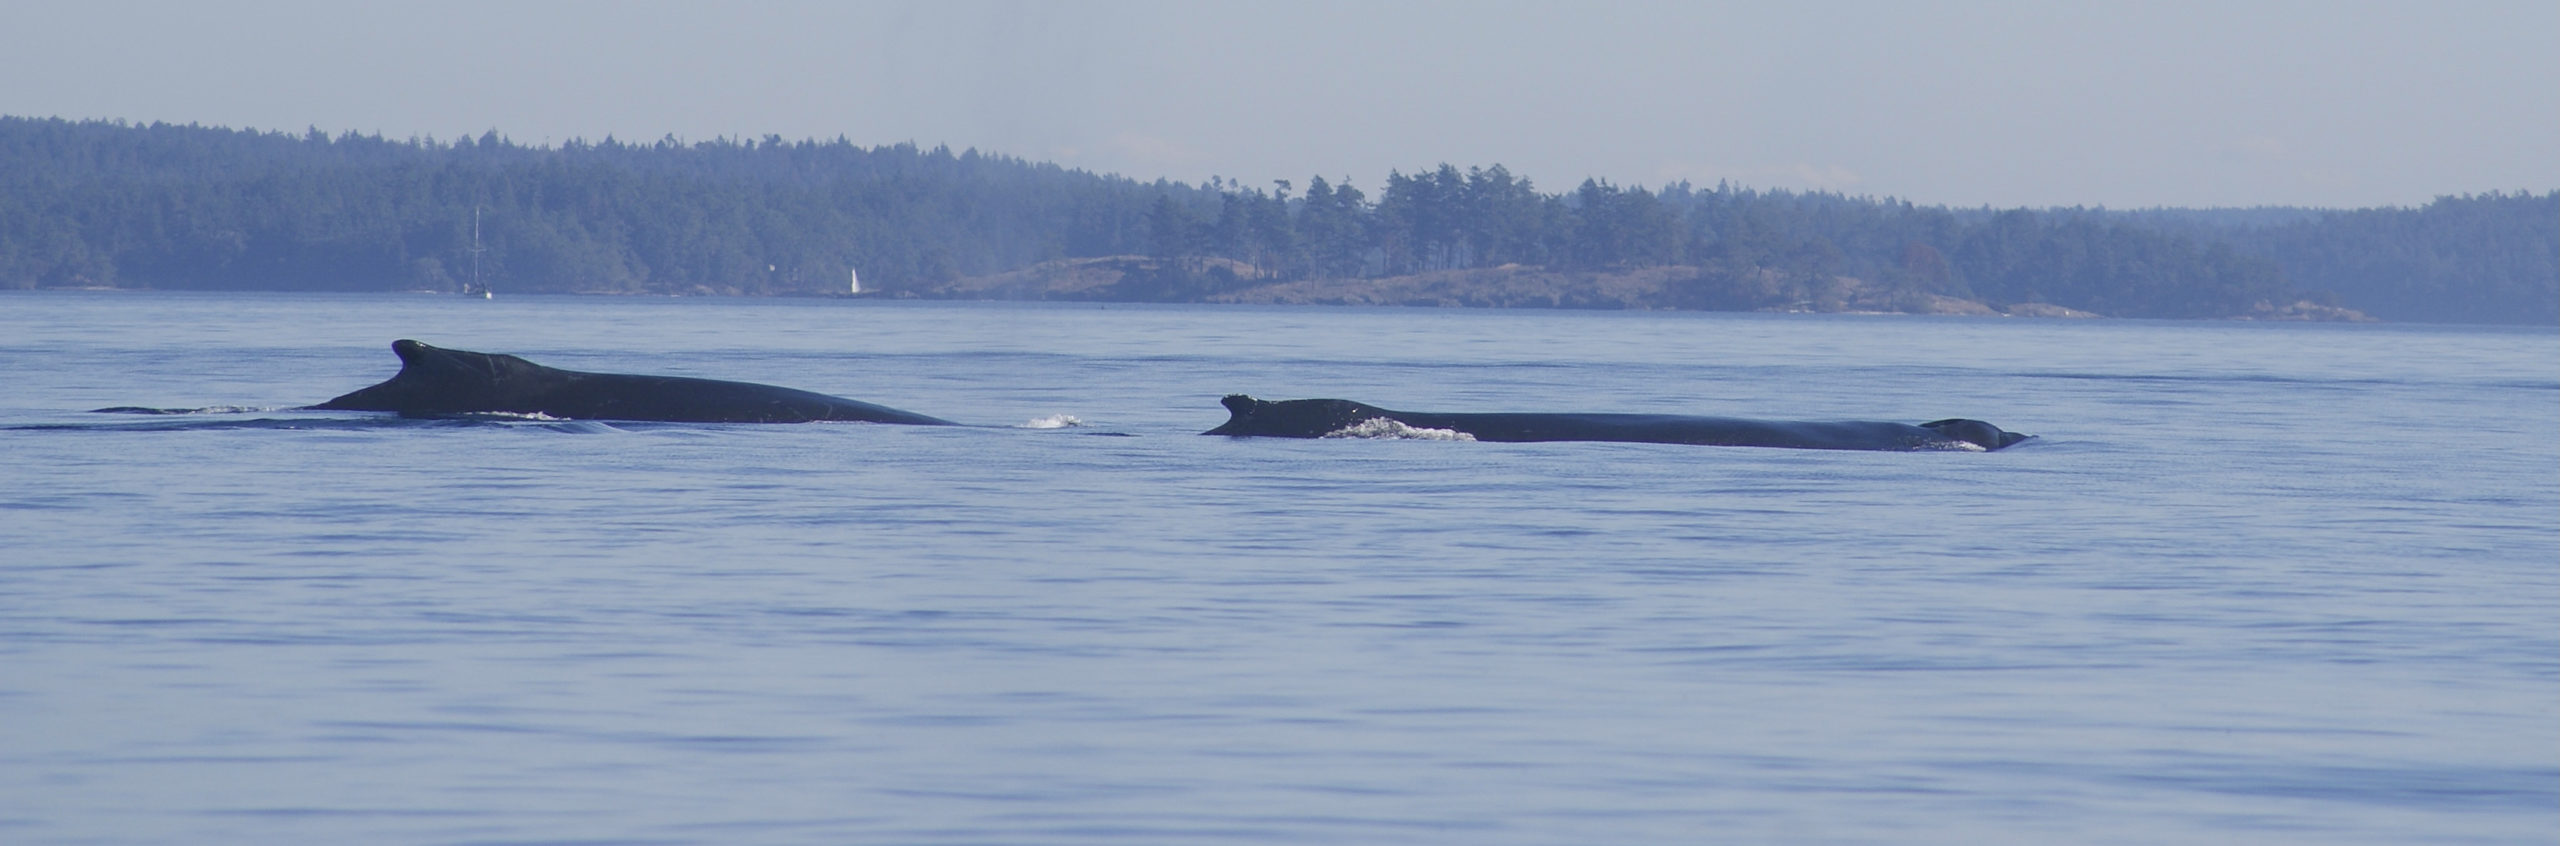 Two humpback whales swimming off of Washington